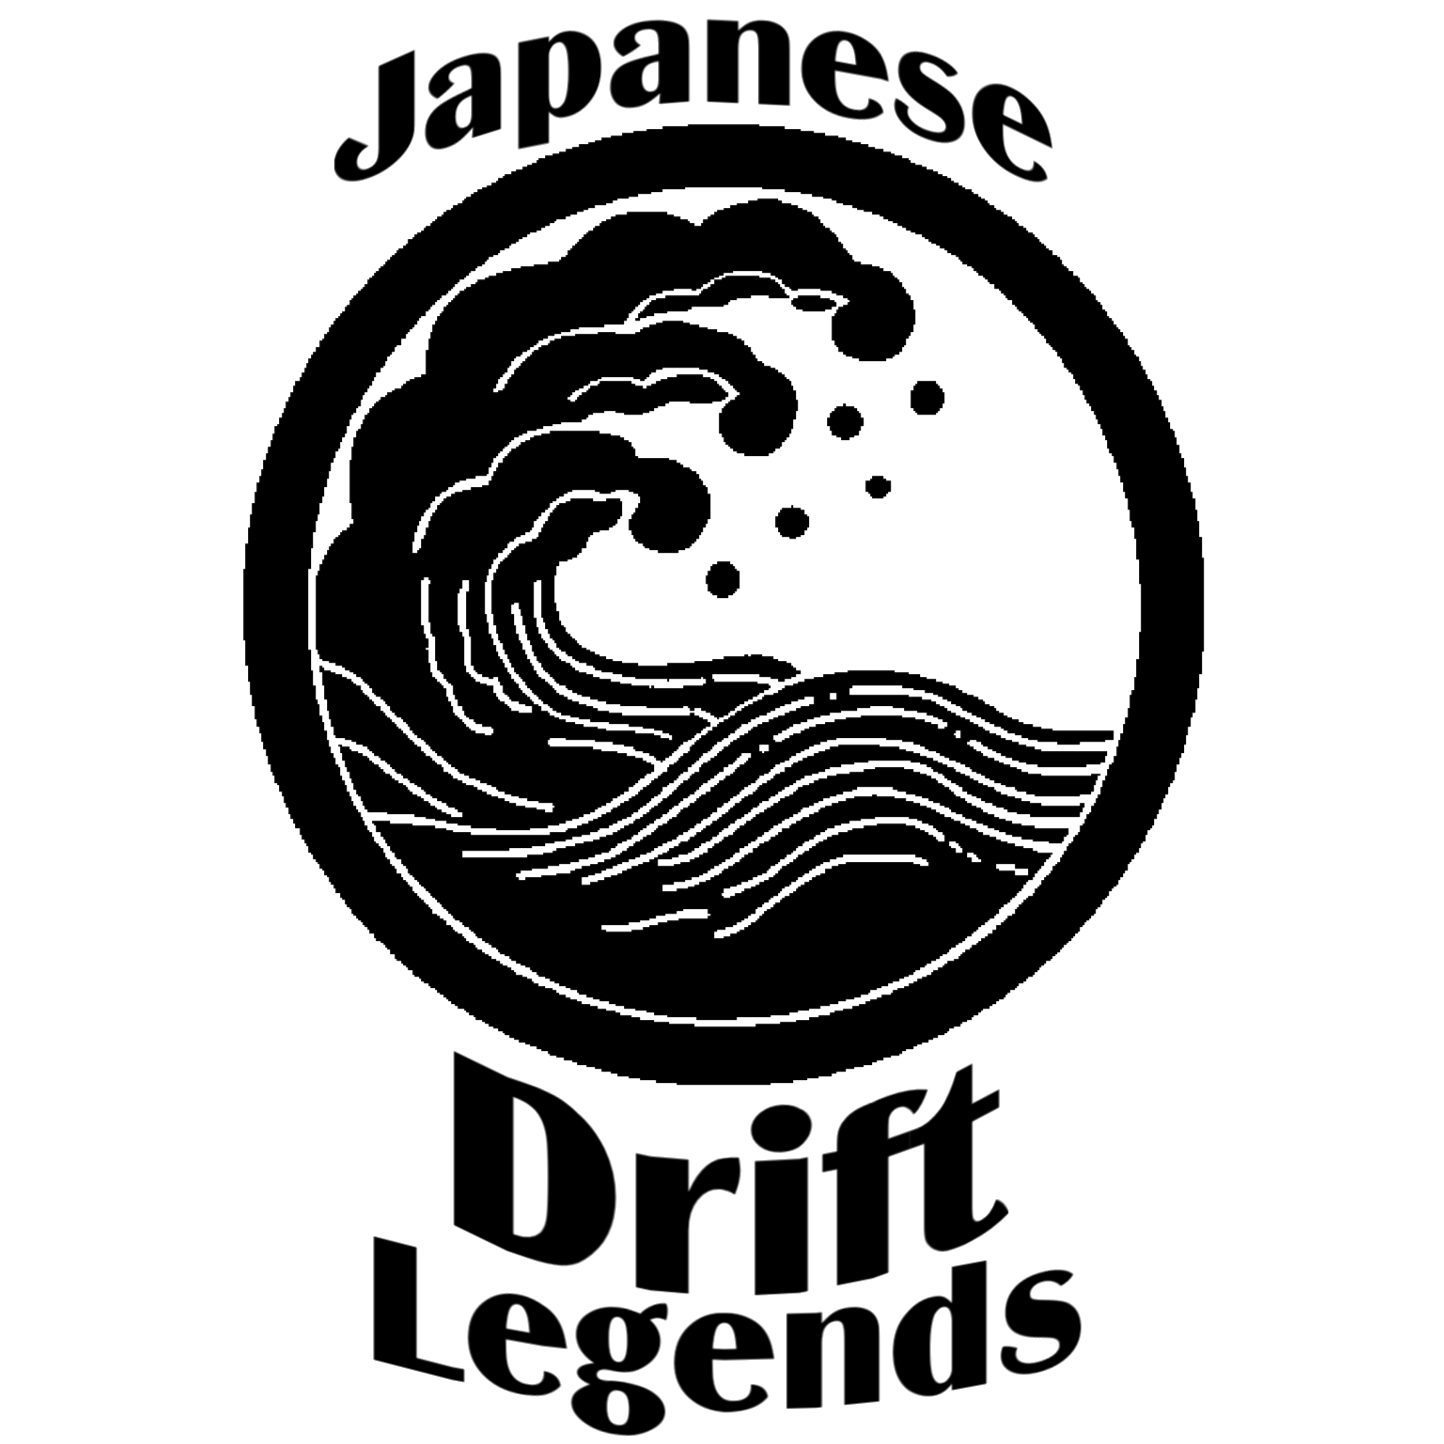 Japanese Drift Legends